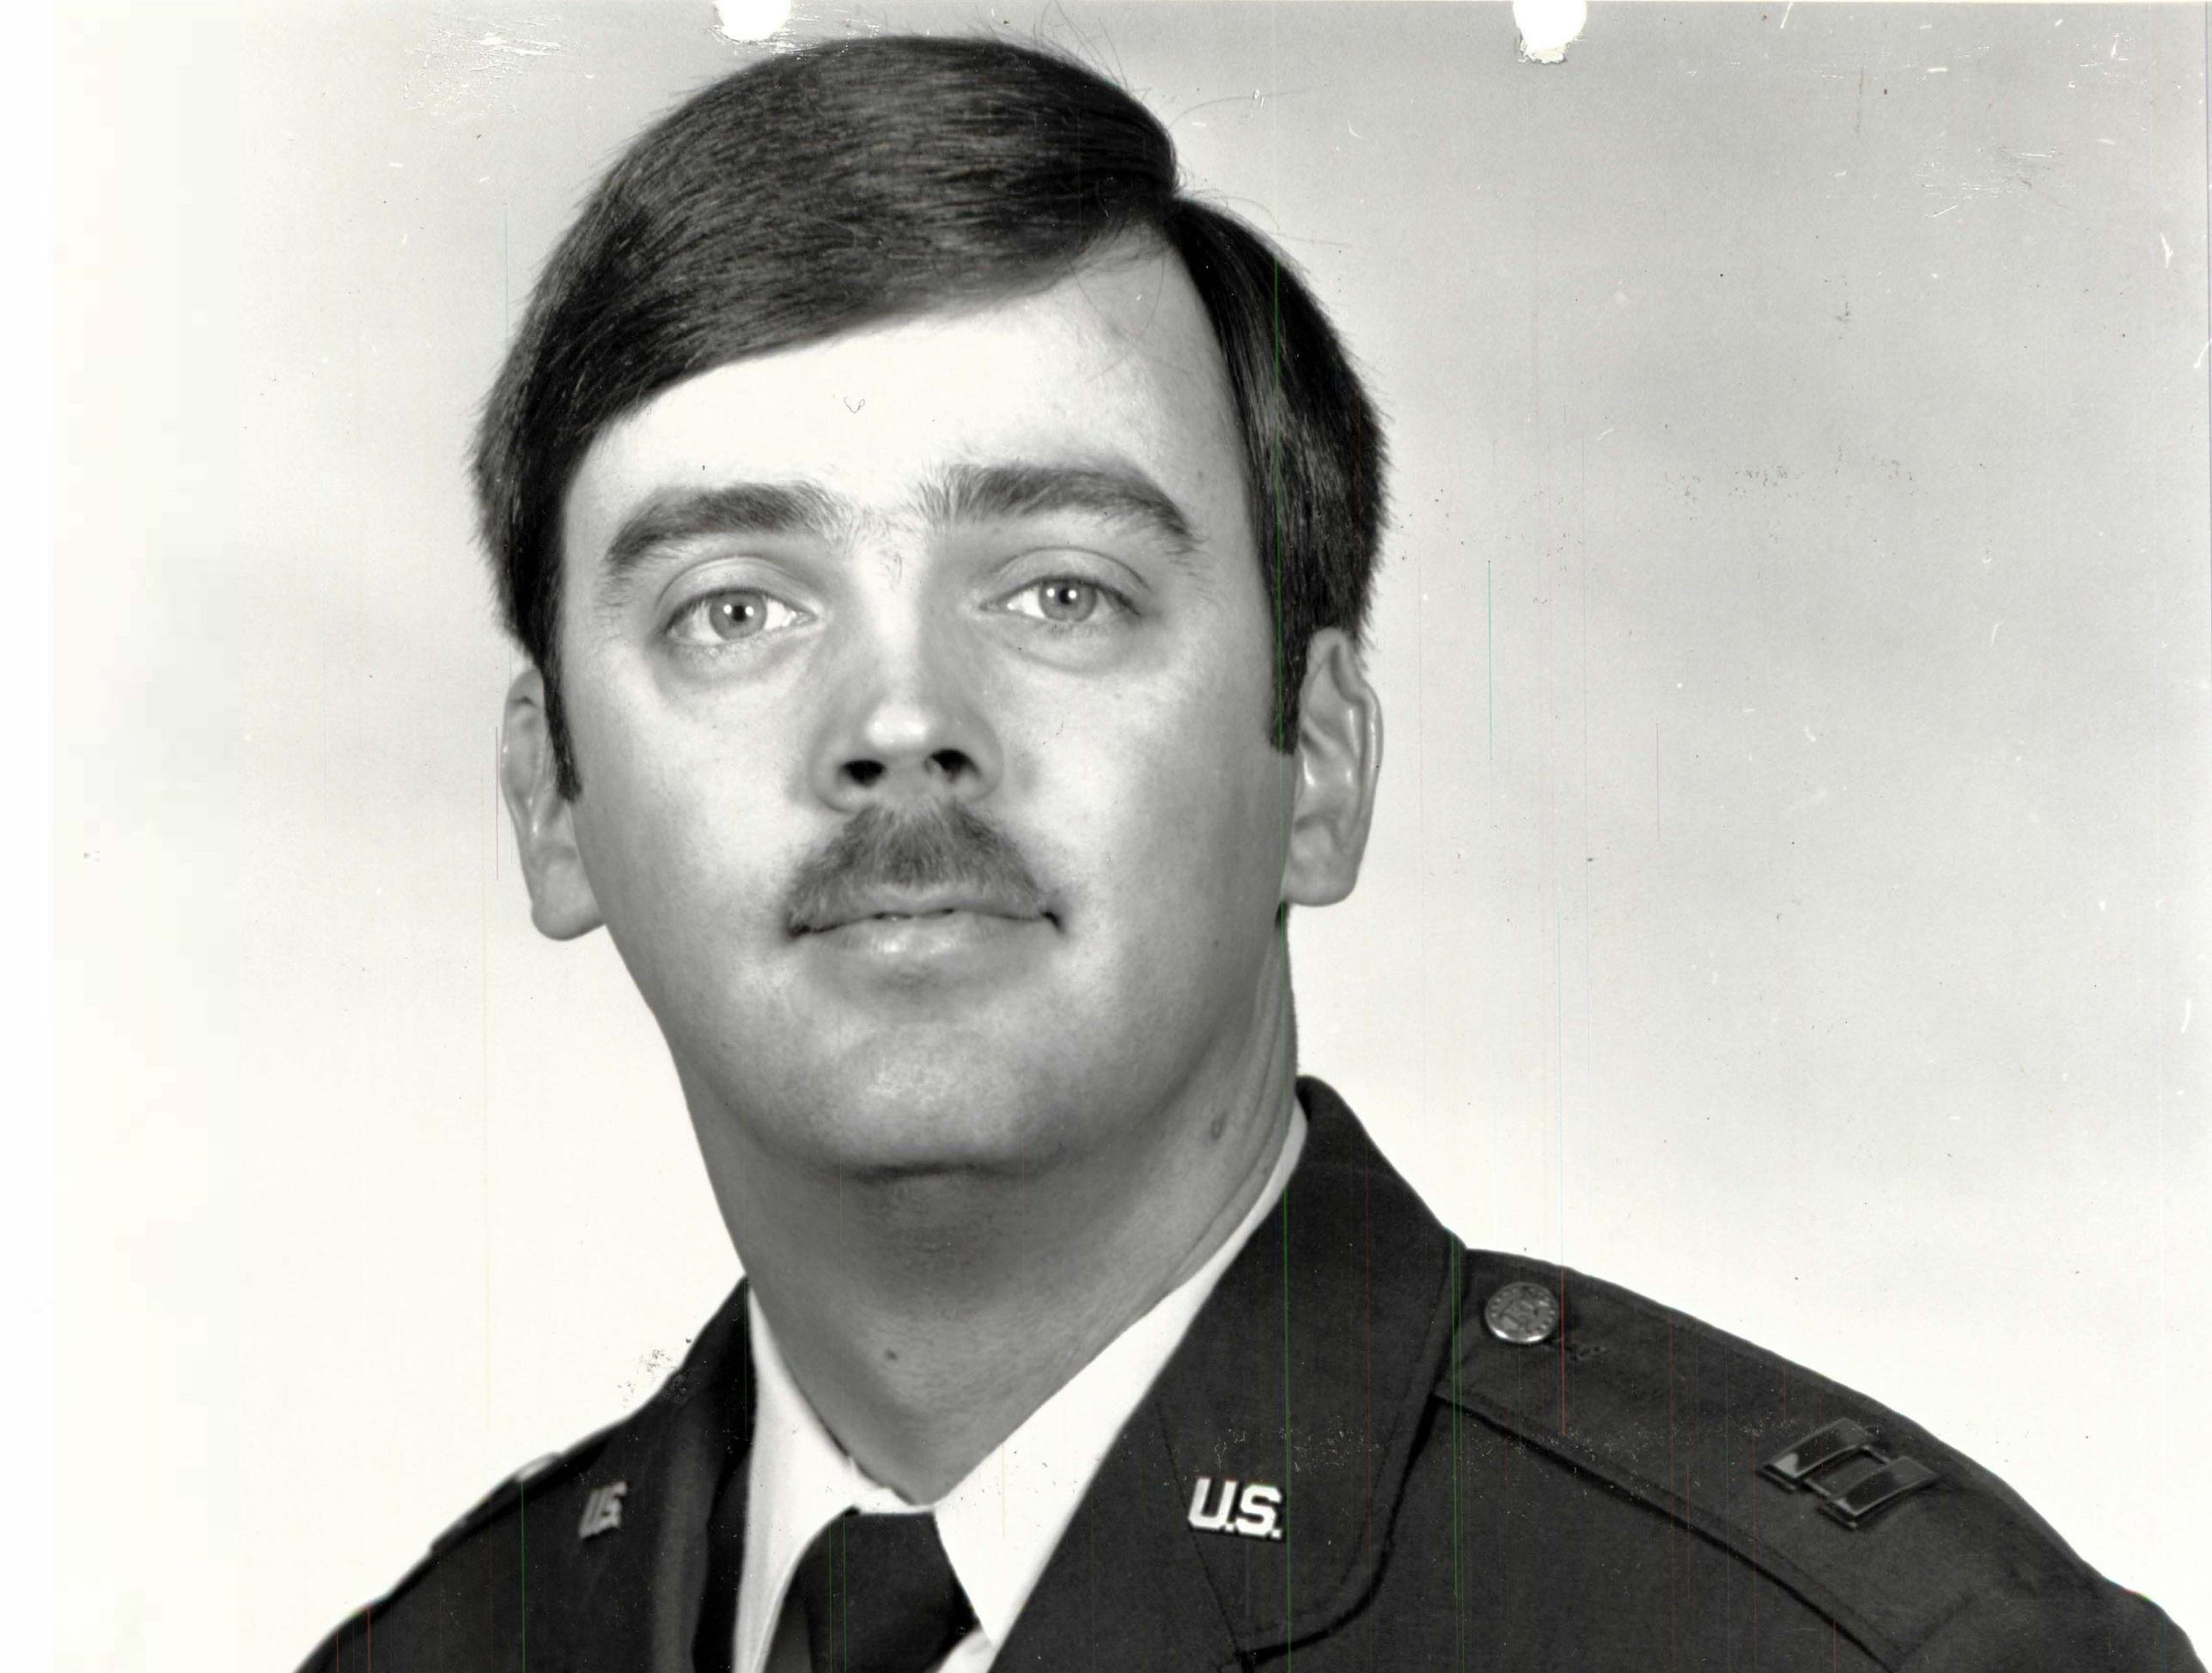 Missing Air Force officer with top-secret clearance found after 35 years